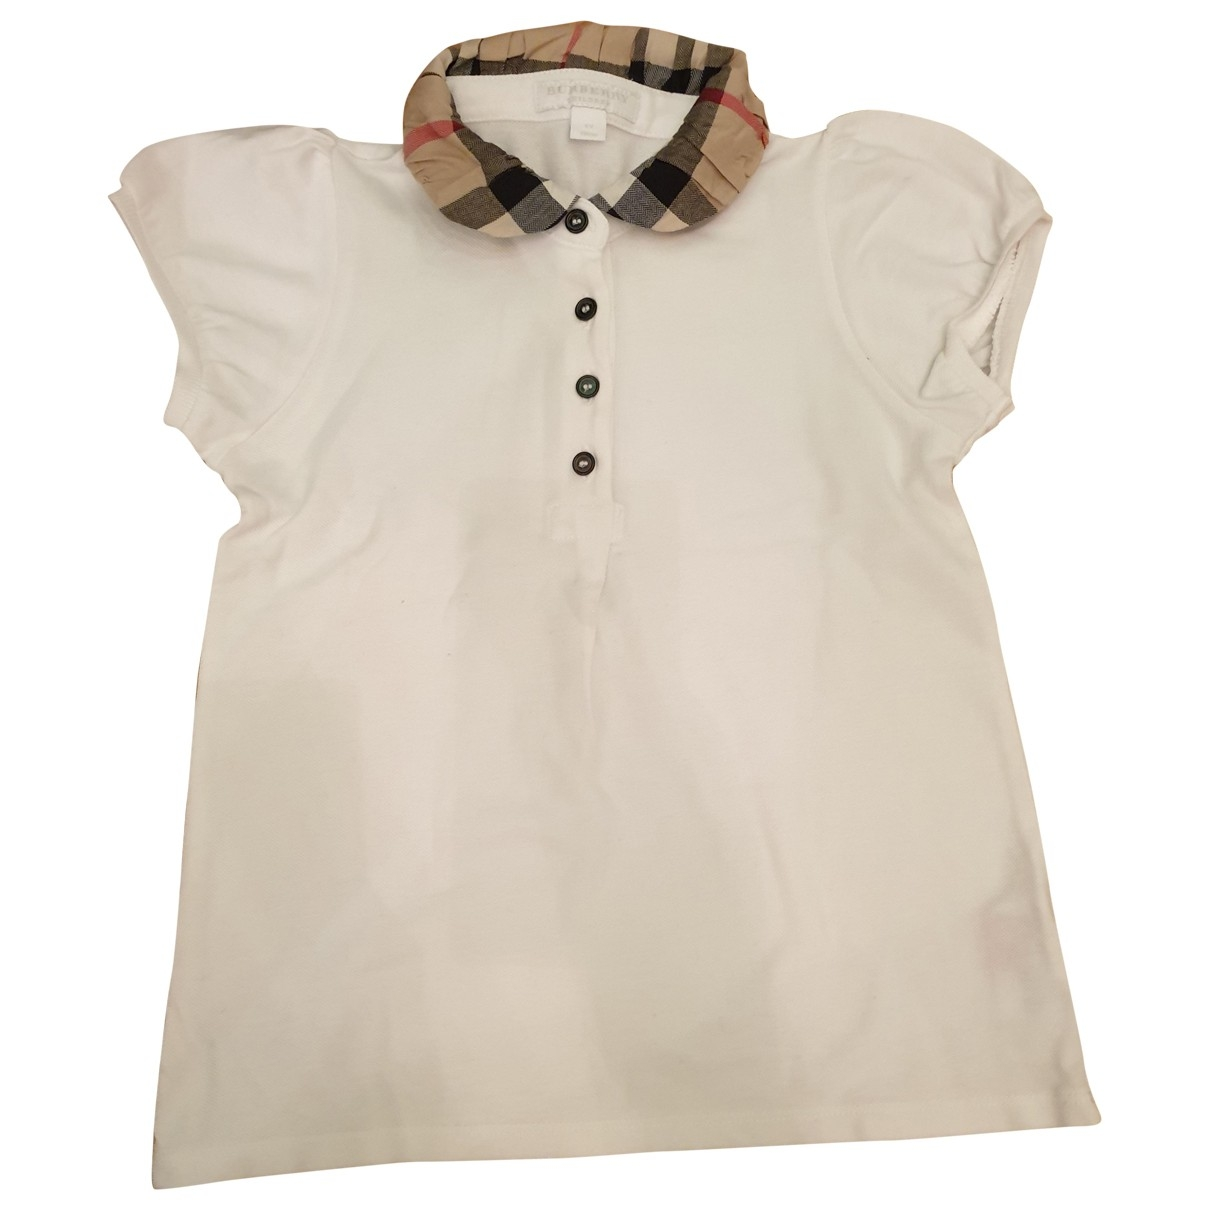 Camiseta Burberry